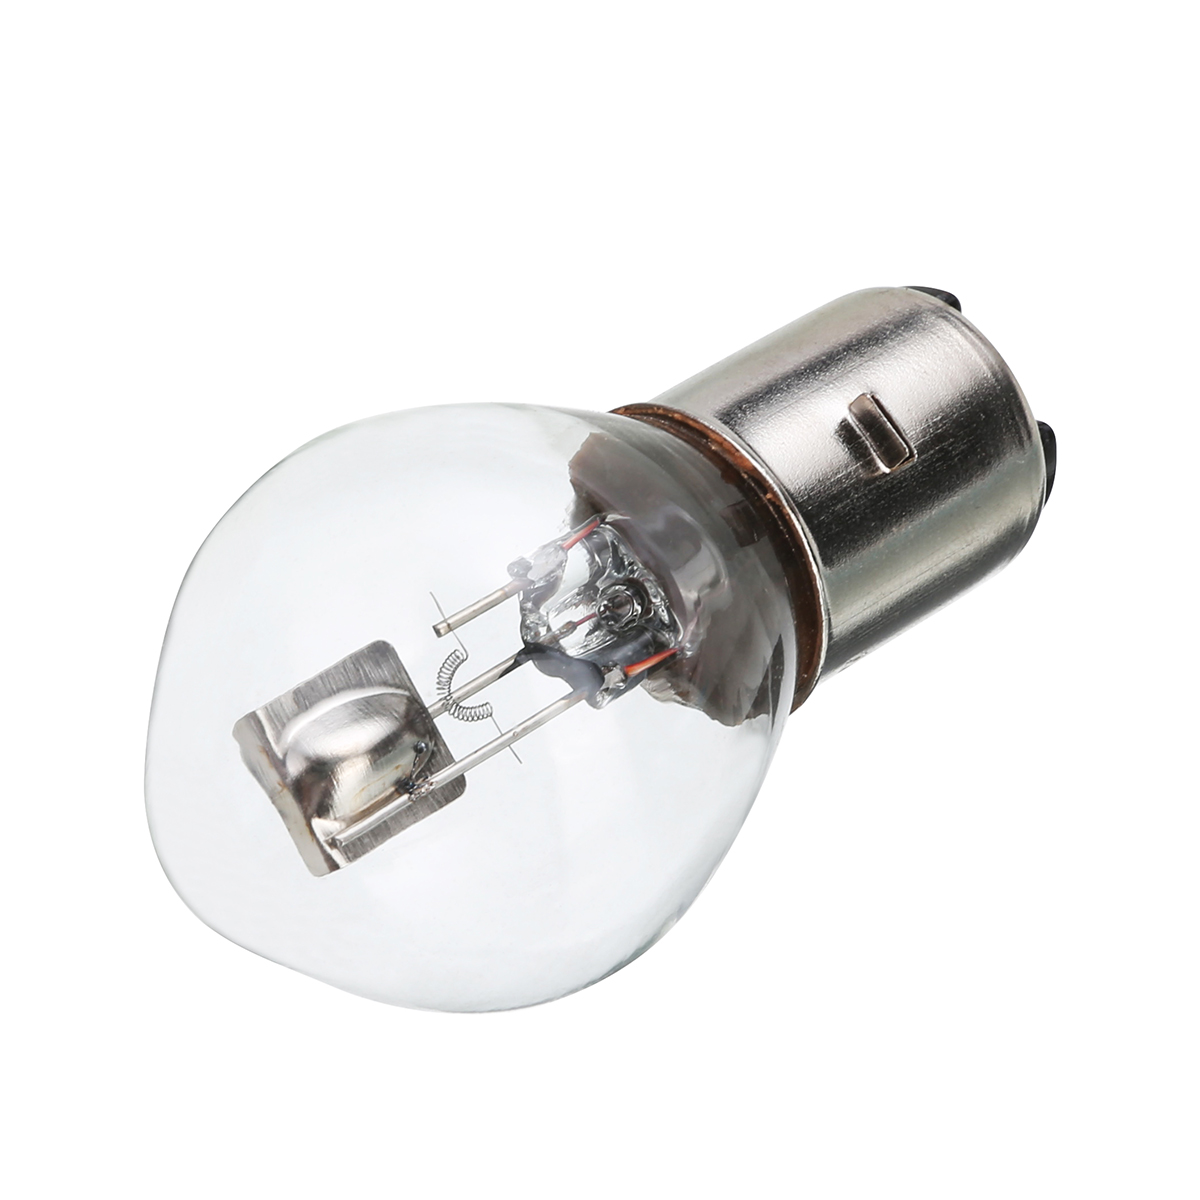 New Arrival 1pc 12V 35W ATV Moped Scooter Motorcycle Head Light Lamp Bulb B35 BA20D Accessories